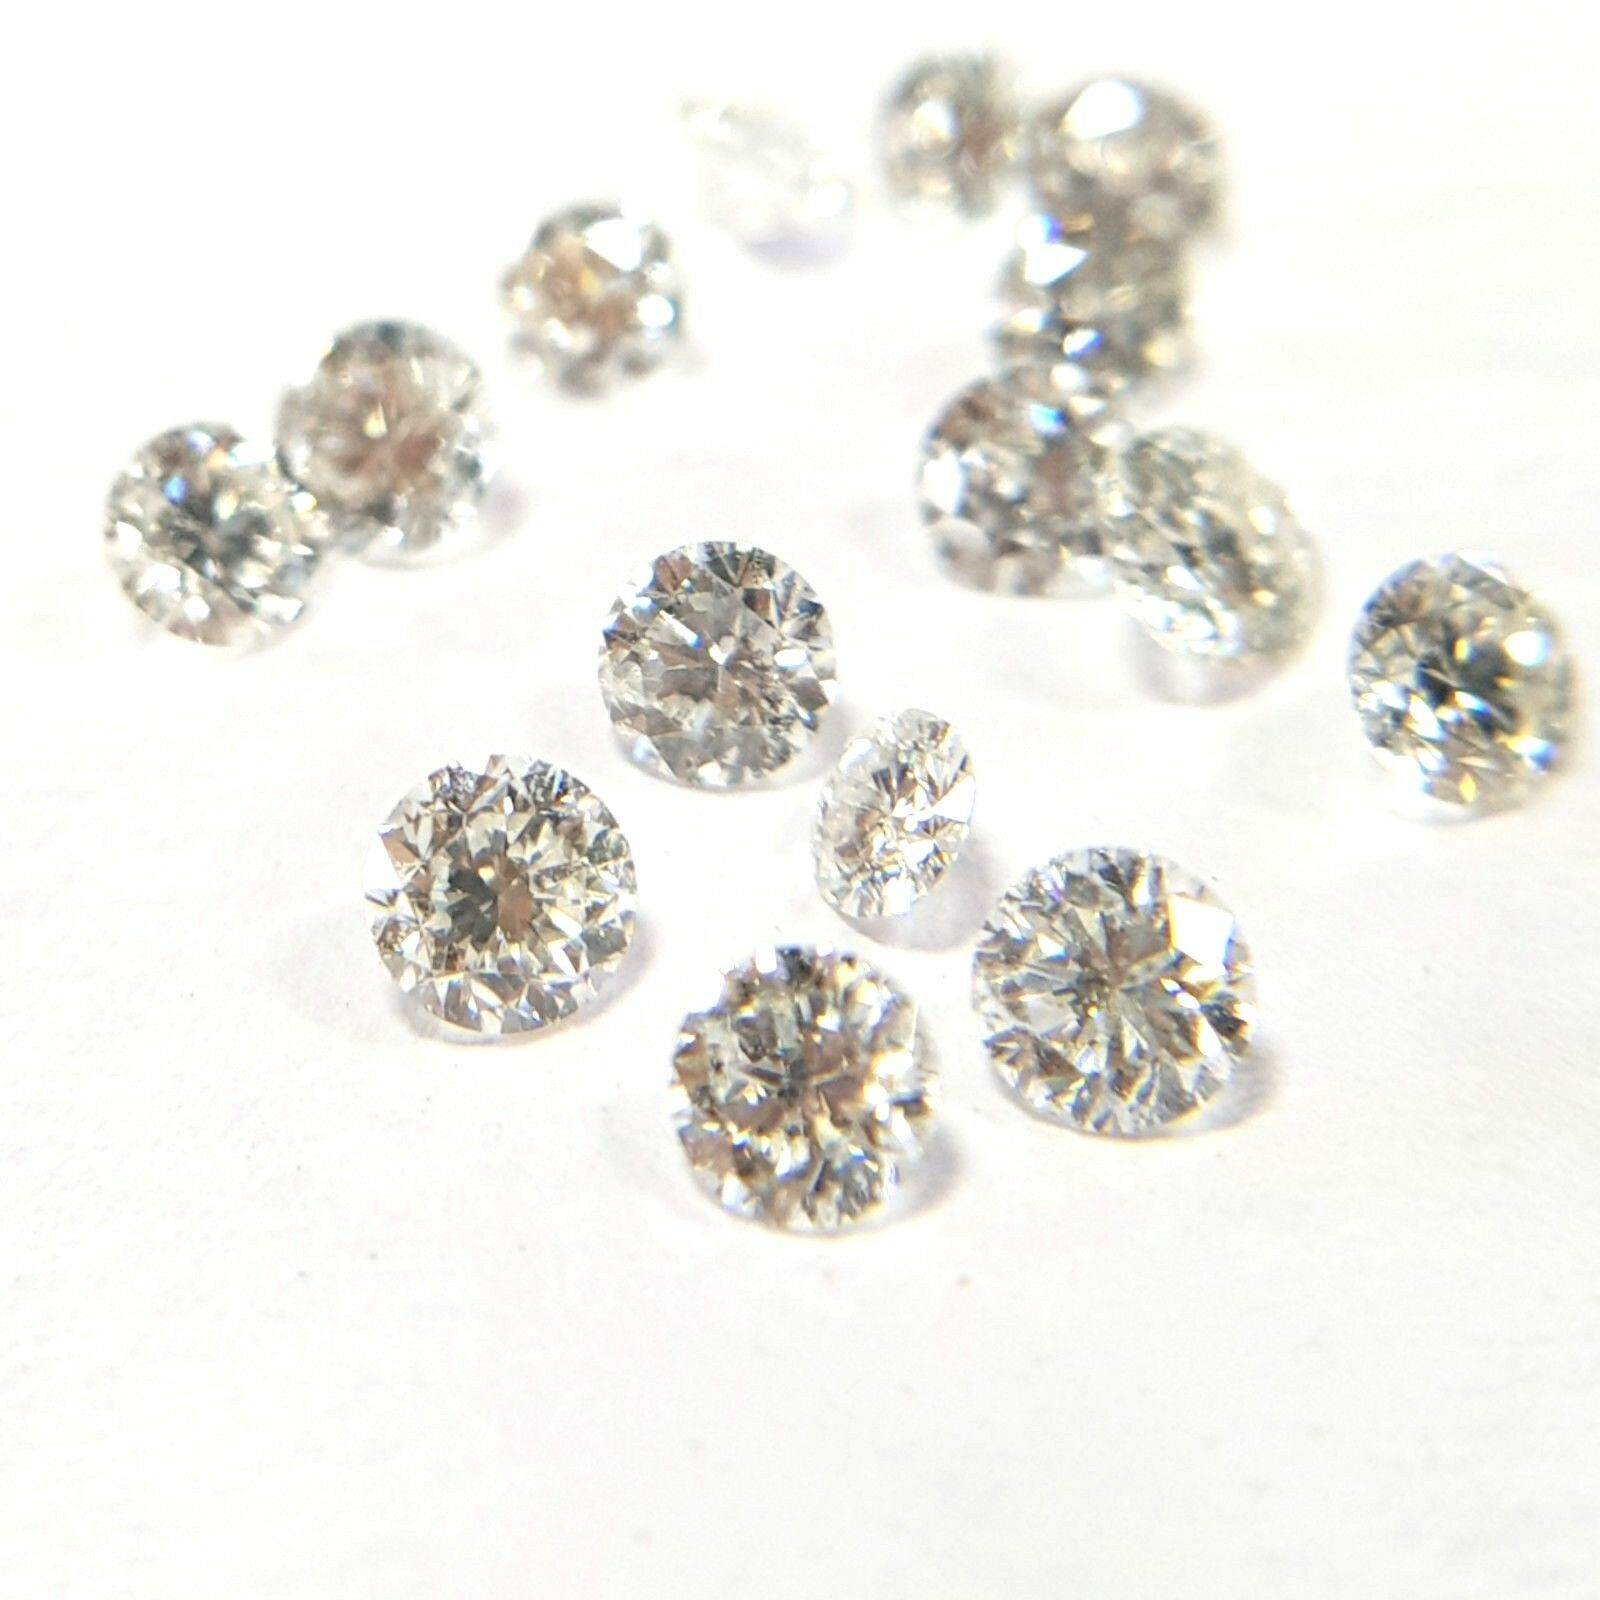 Natural Loose Diamonds Round 10 Pcs Lot VS Clarity F White color 100% Real